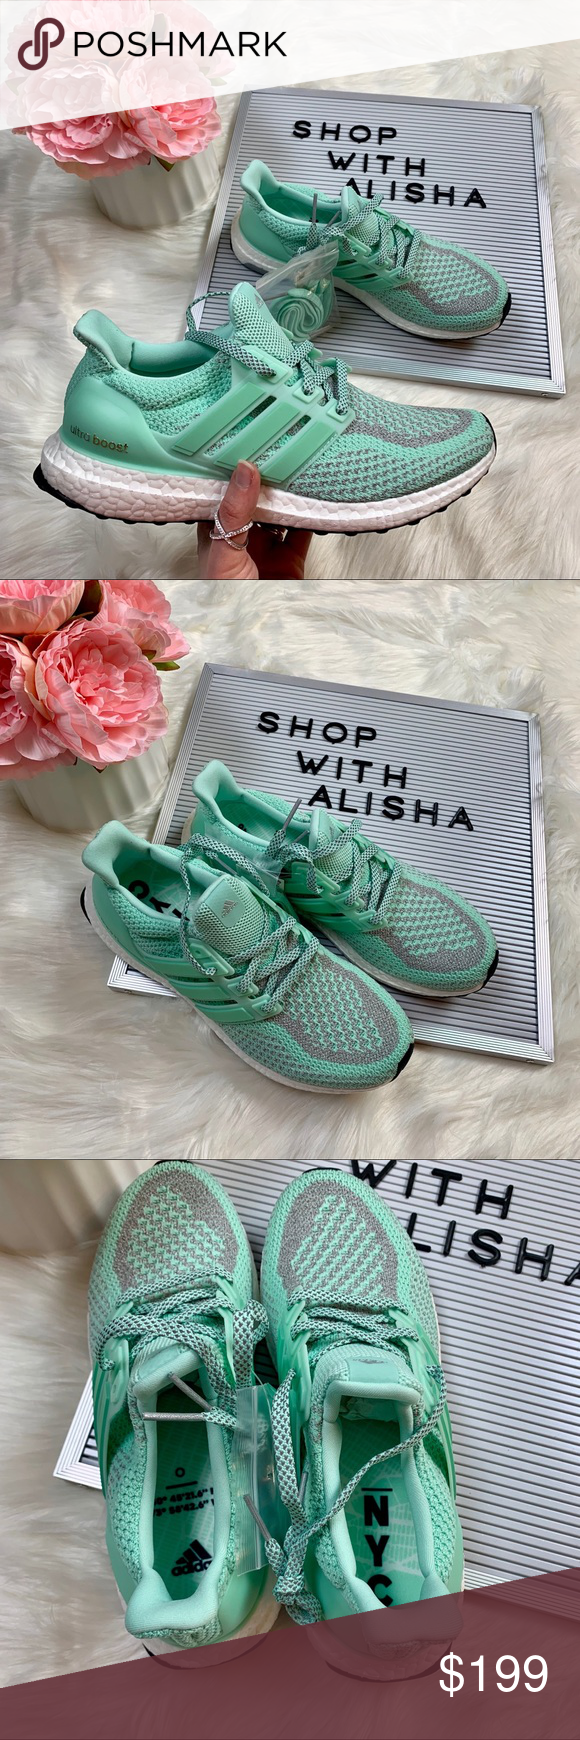 new product 2a94a 46889 adidas Shoes | Nwb Adidas Ultraboost Lady Liberty 2.0s ...